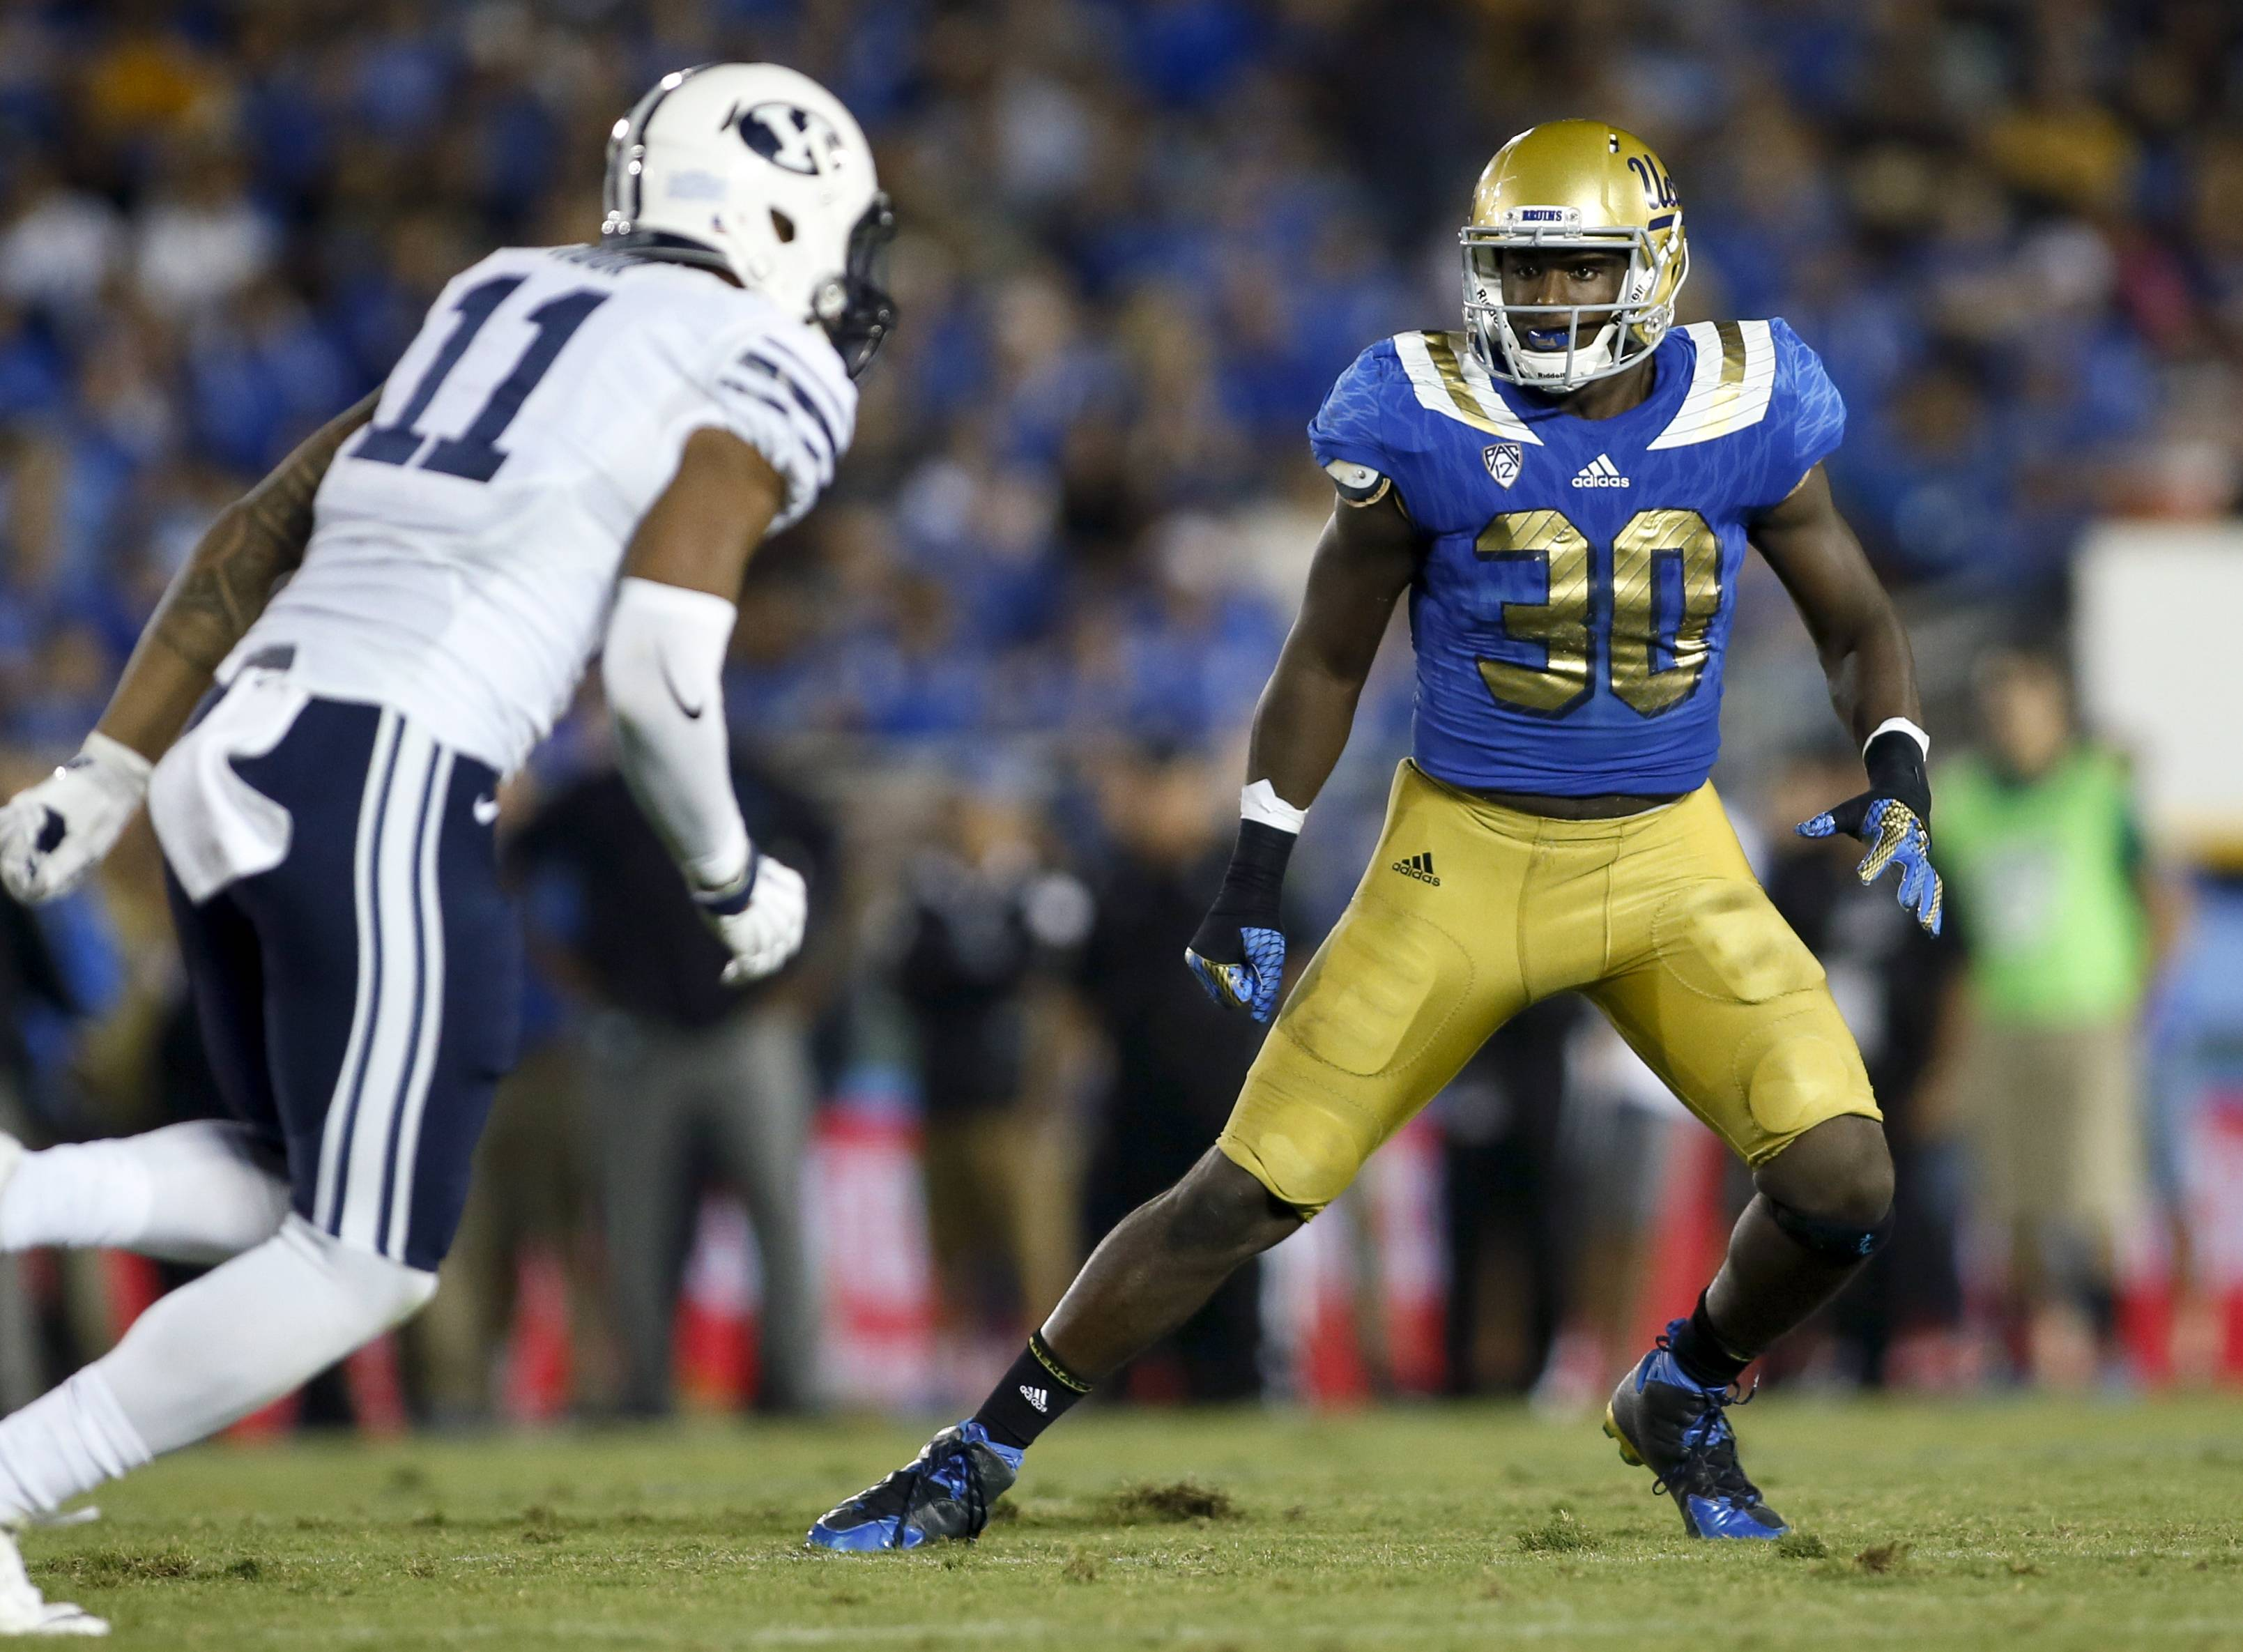 UCLA linebacker Myles Jack had a much less serious knee injury than Smith, but was not selected in the first round after being projected as a top-10 pick as recently as last week. Could the Bears snag him when the NFL Draft resumes tonight?